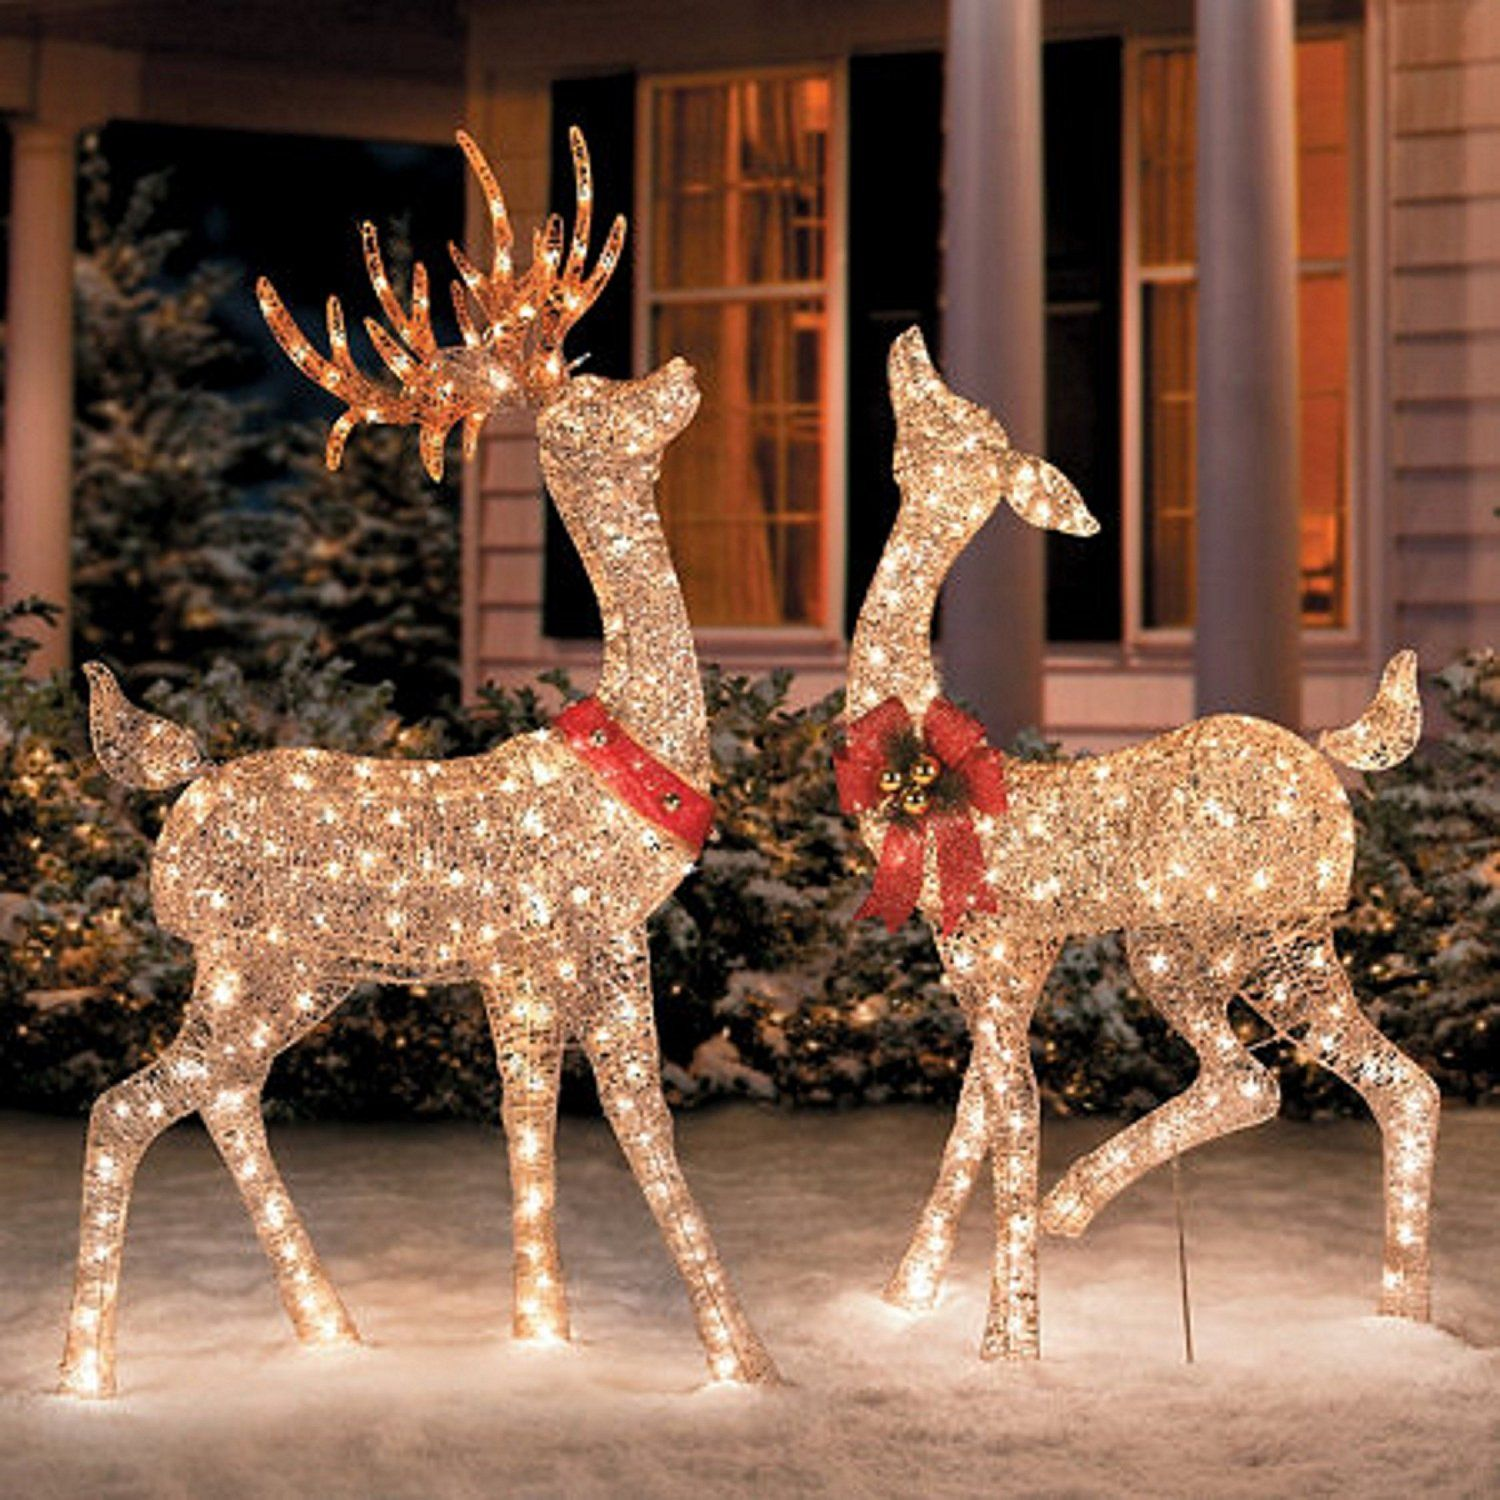 Outdoor Christmas Deer Decorations